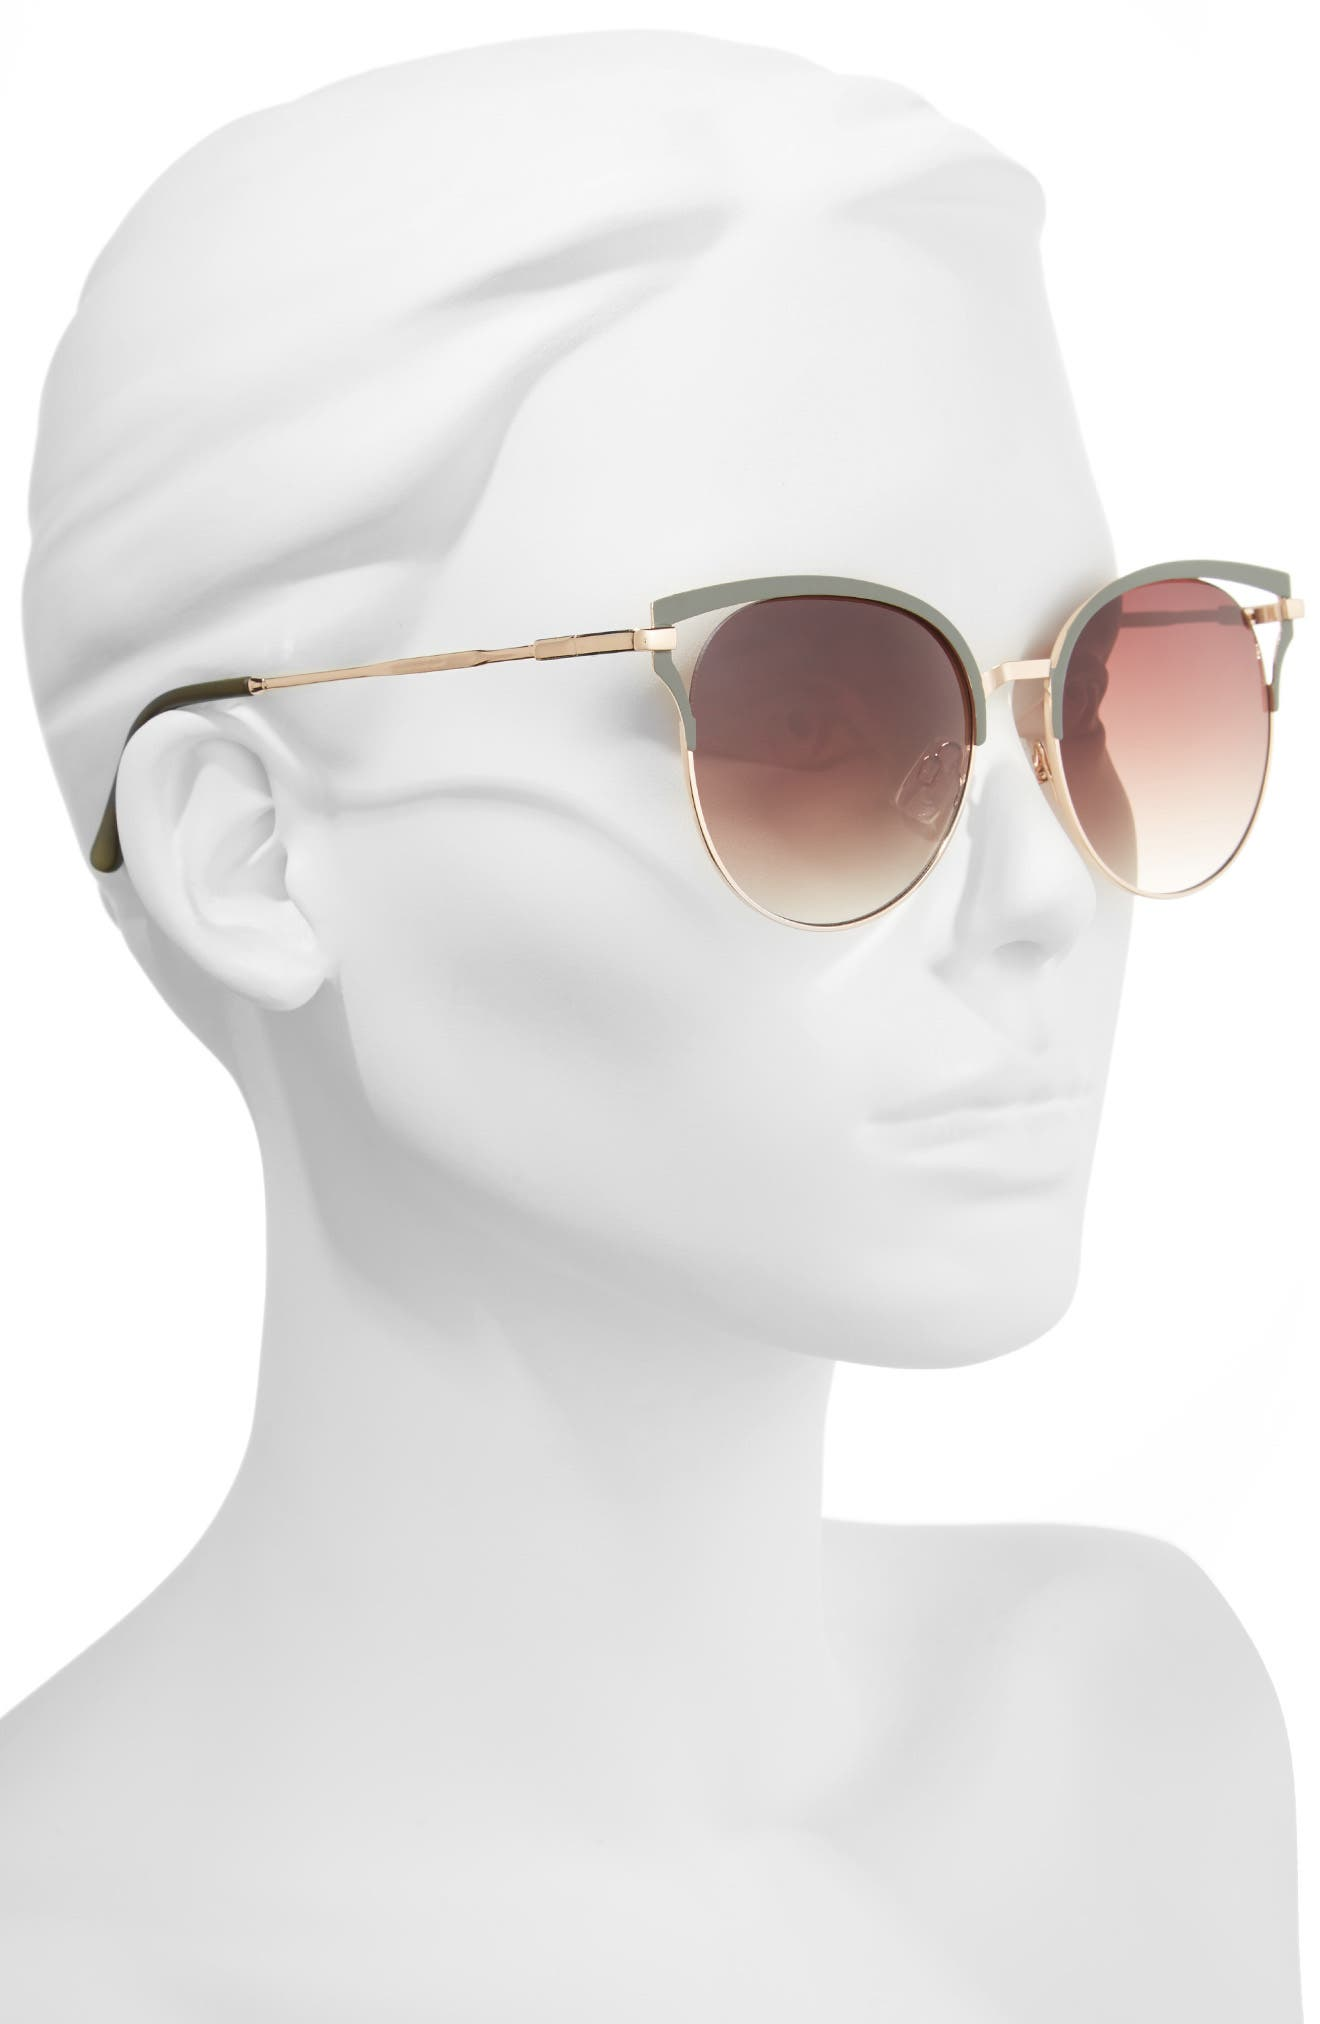 55mm Colored Round Sunglasses,                             Alternate thumbnail 2, color,                             300